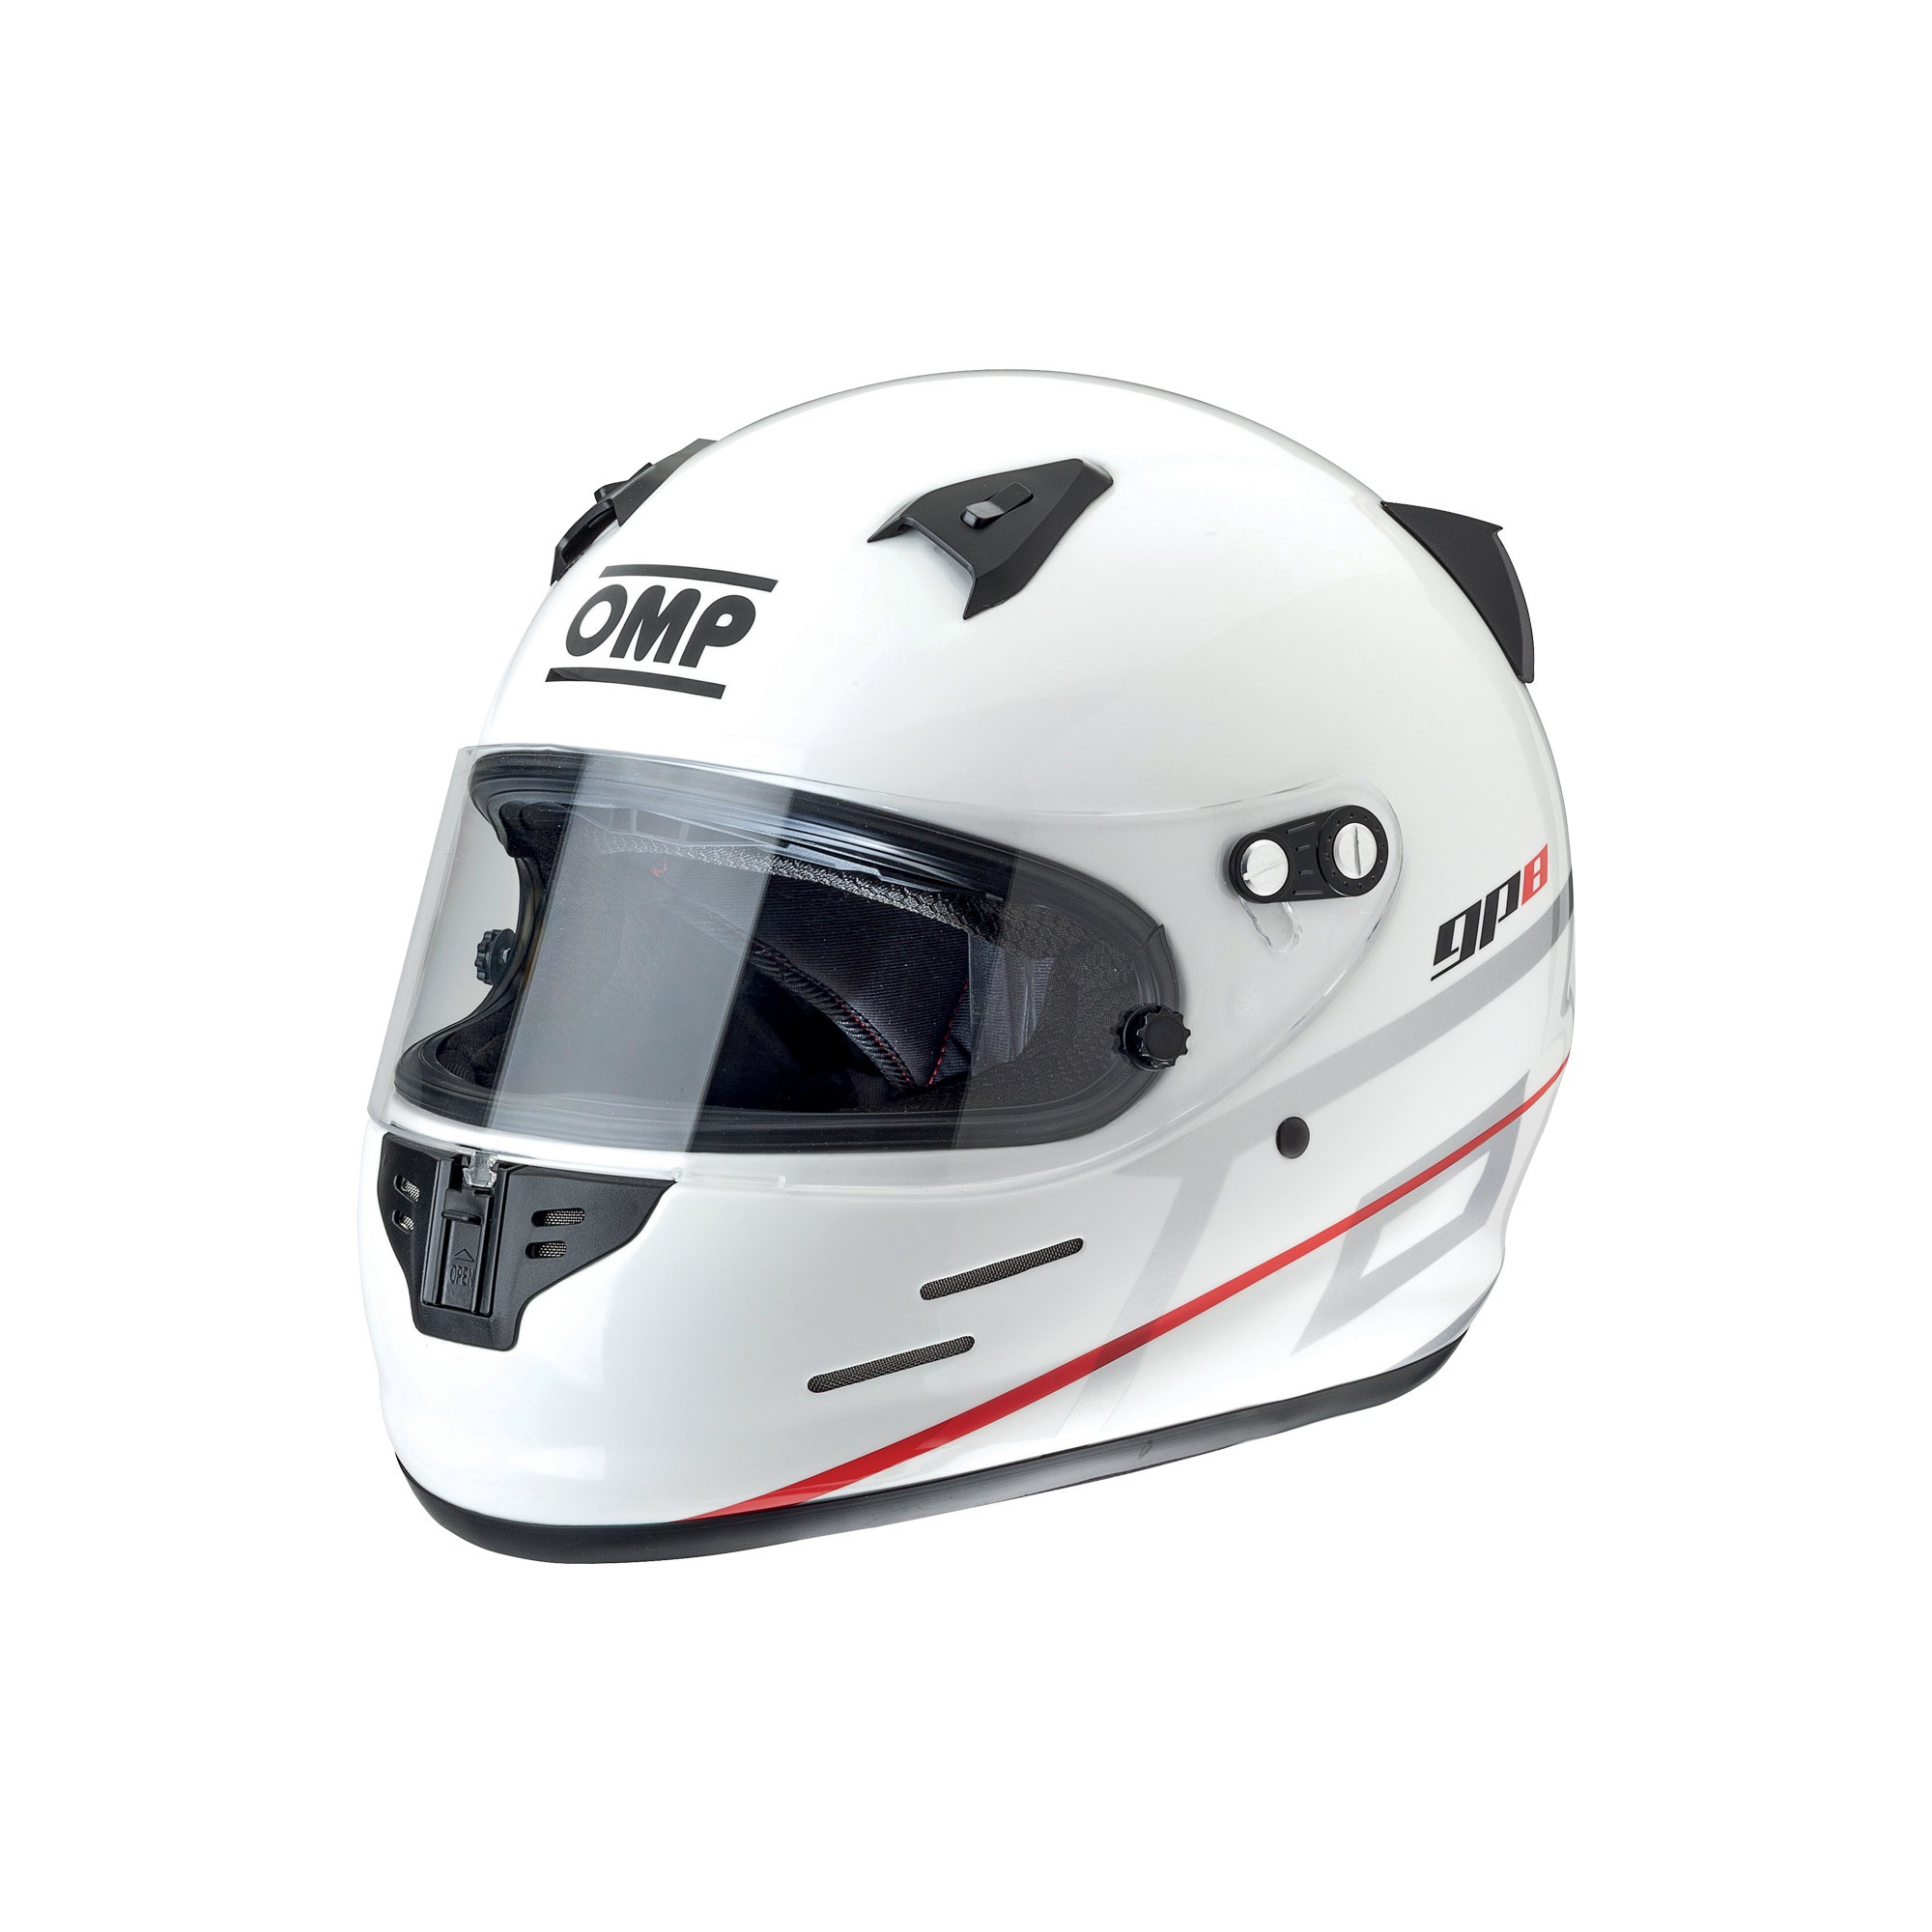 Full face karting helmet - GP 8K